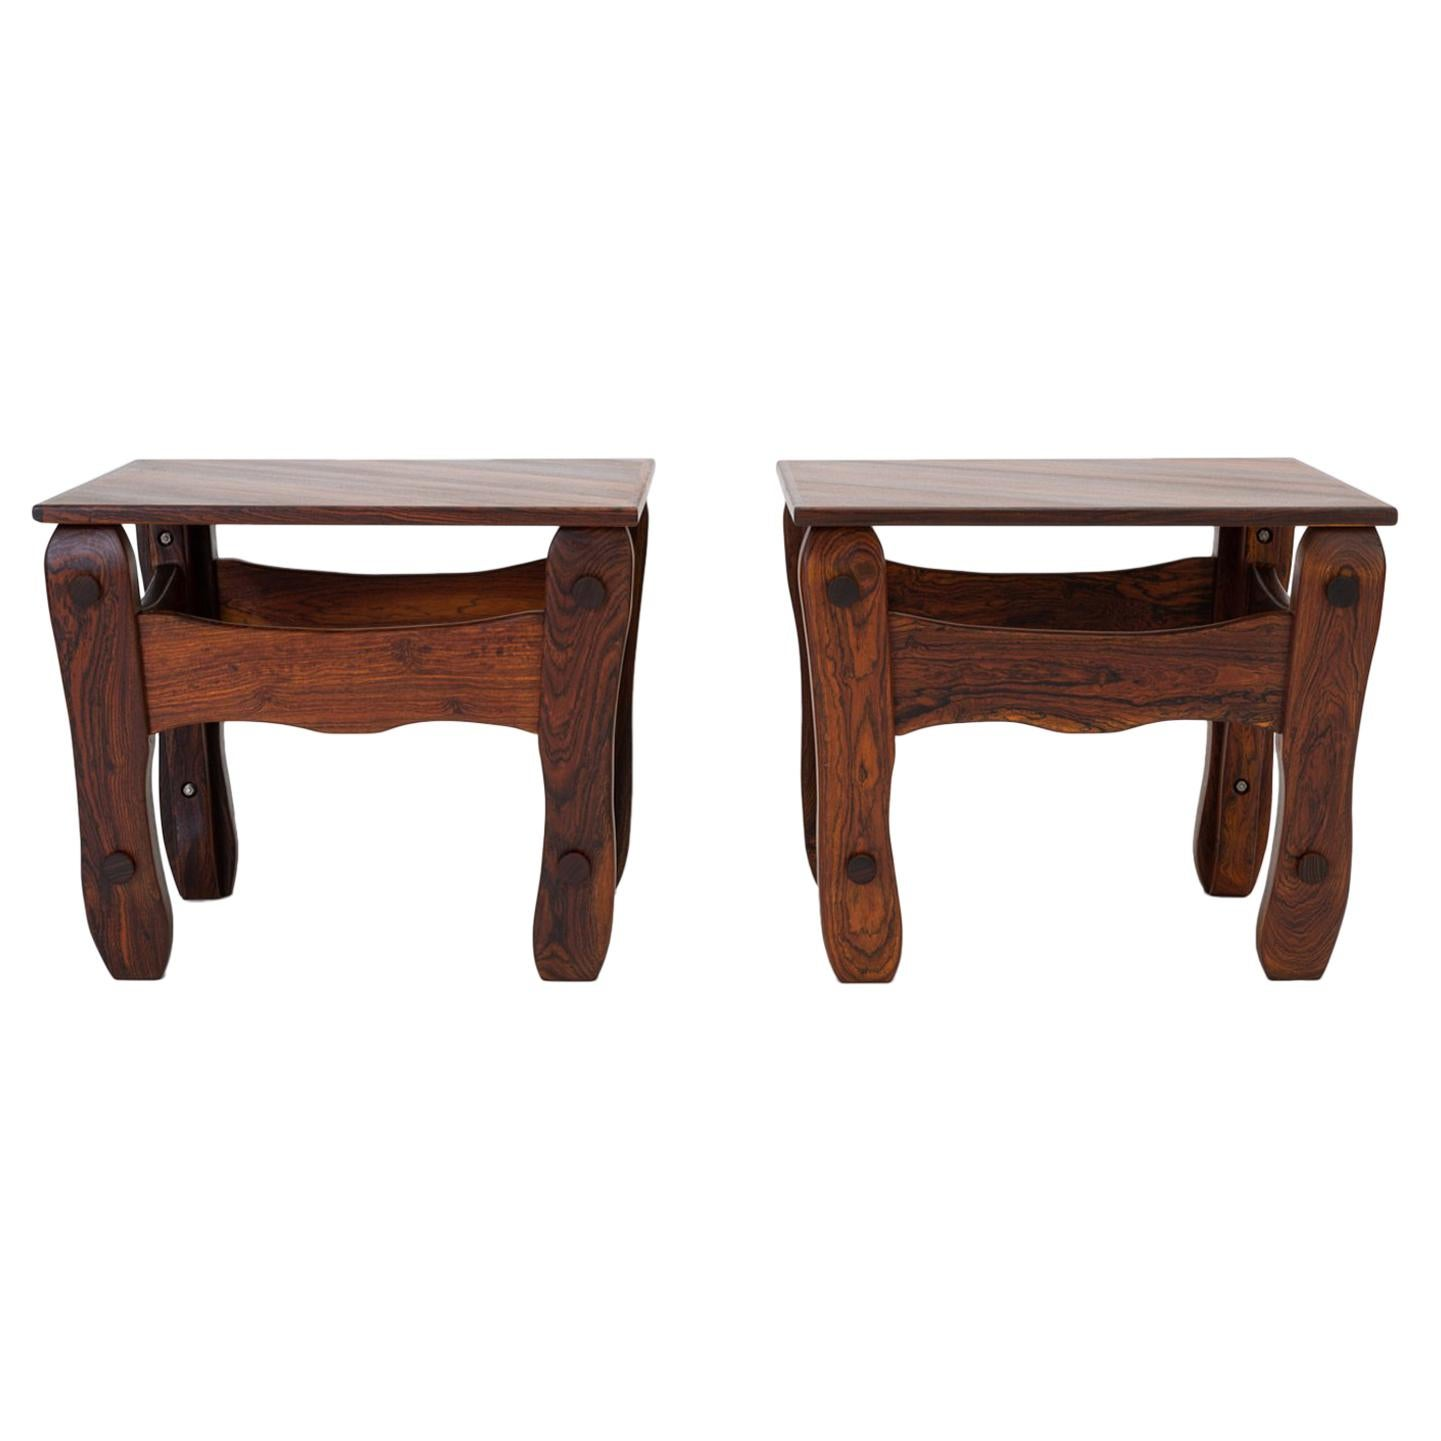 Pair Of Descanso Side Tables By Don Shoemaker For Señal In Cueramo Wood